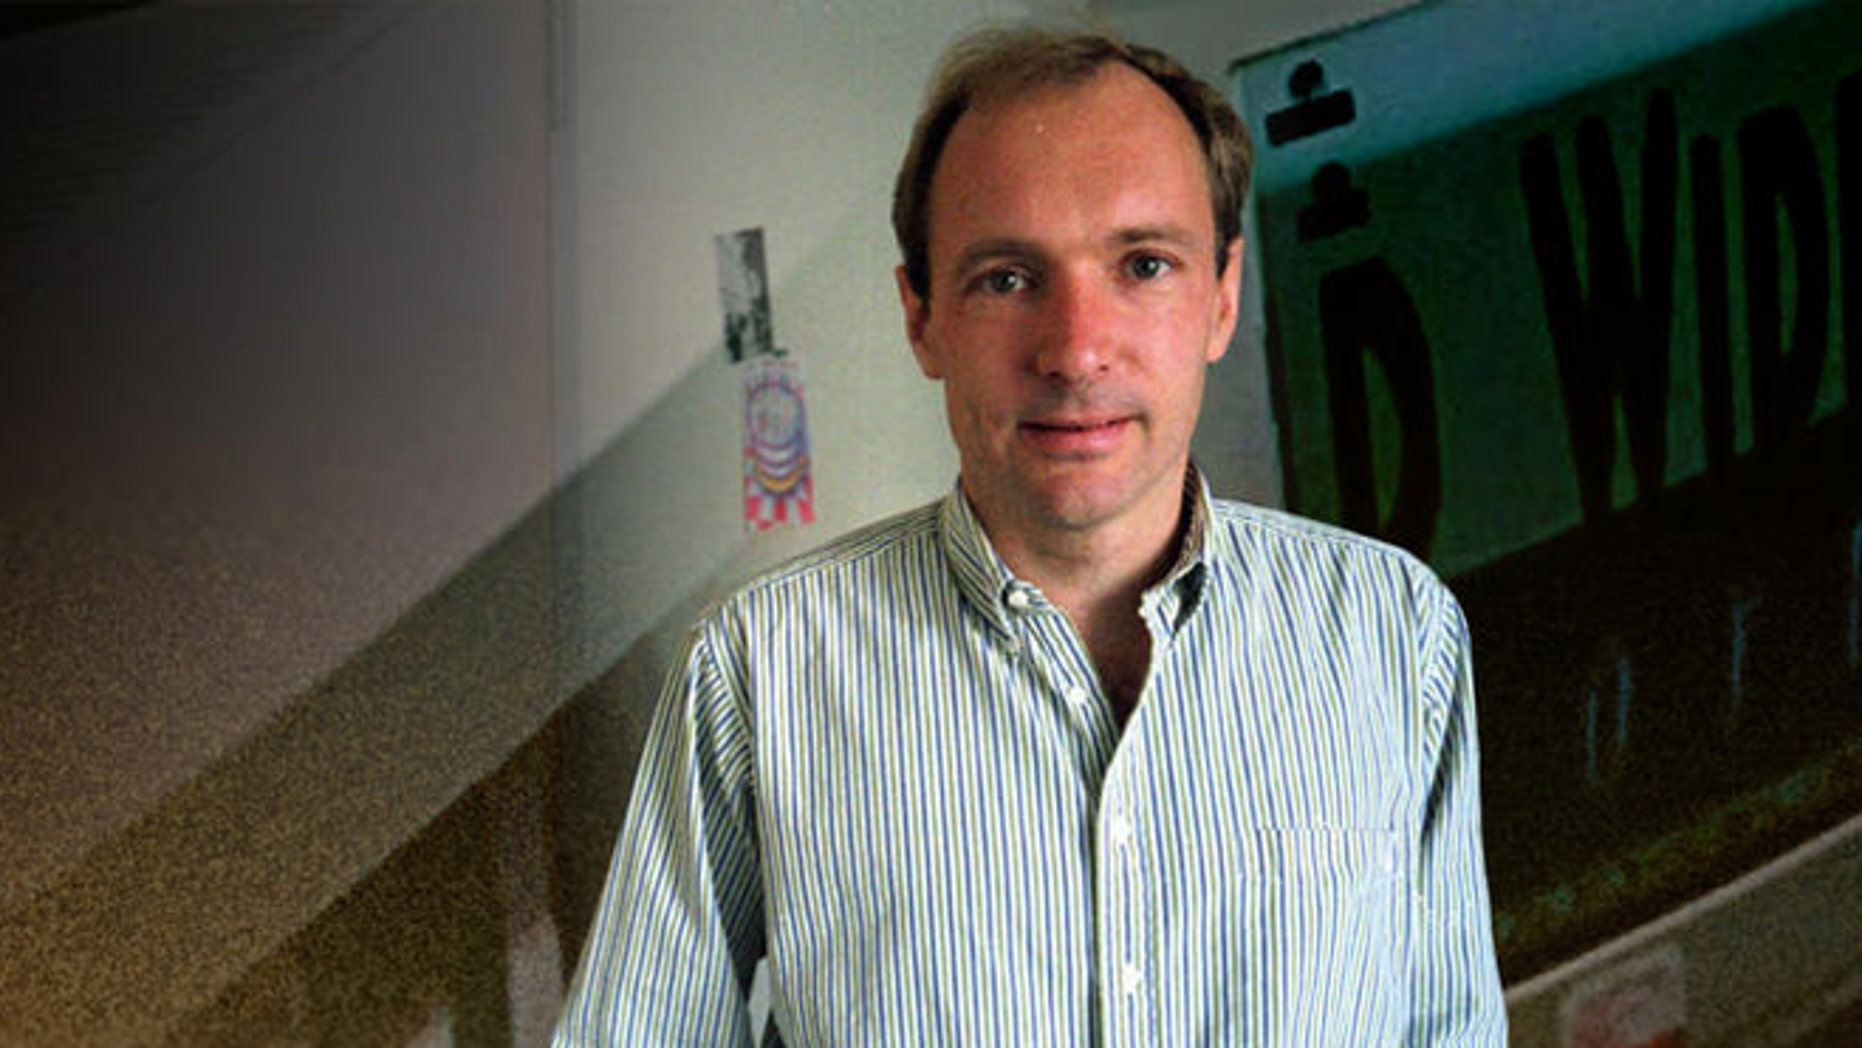 Tim Berners-Lee, the scientist credited with inventing the World Wide Web says a growing tide of surveillance is threatening democracy's future.